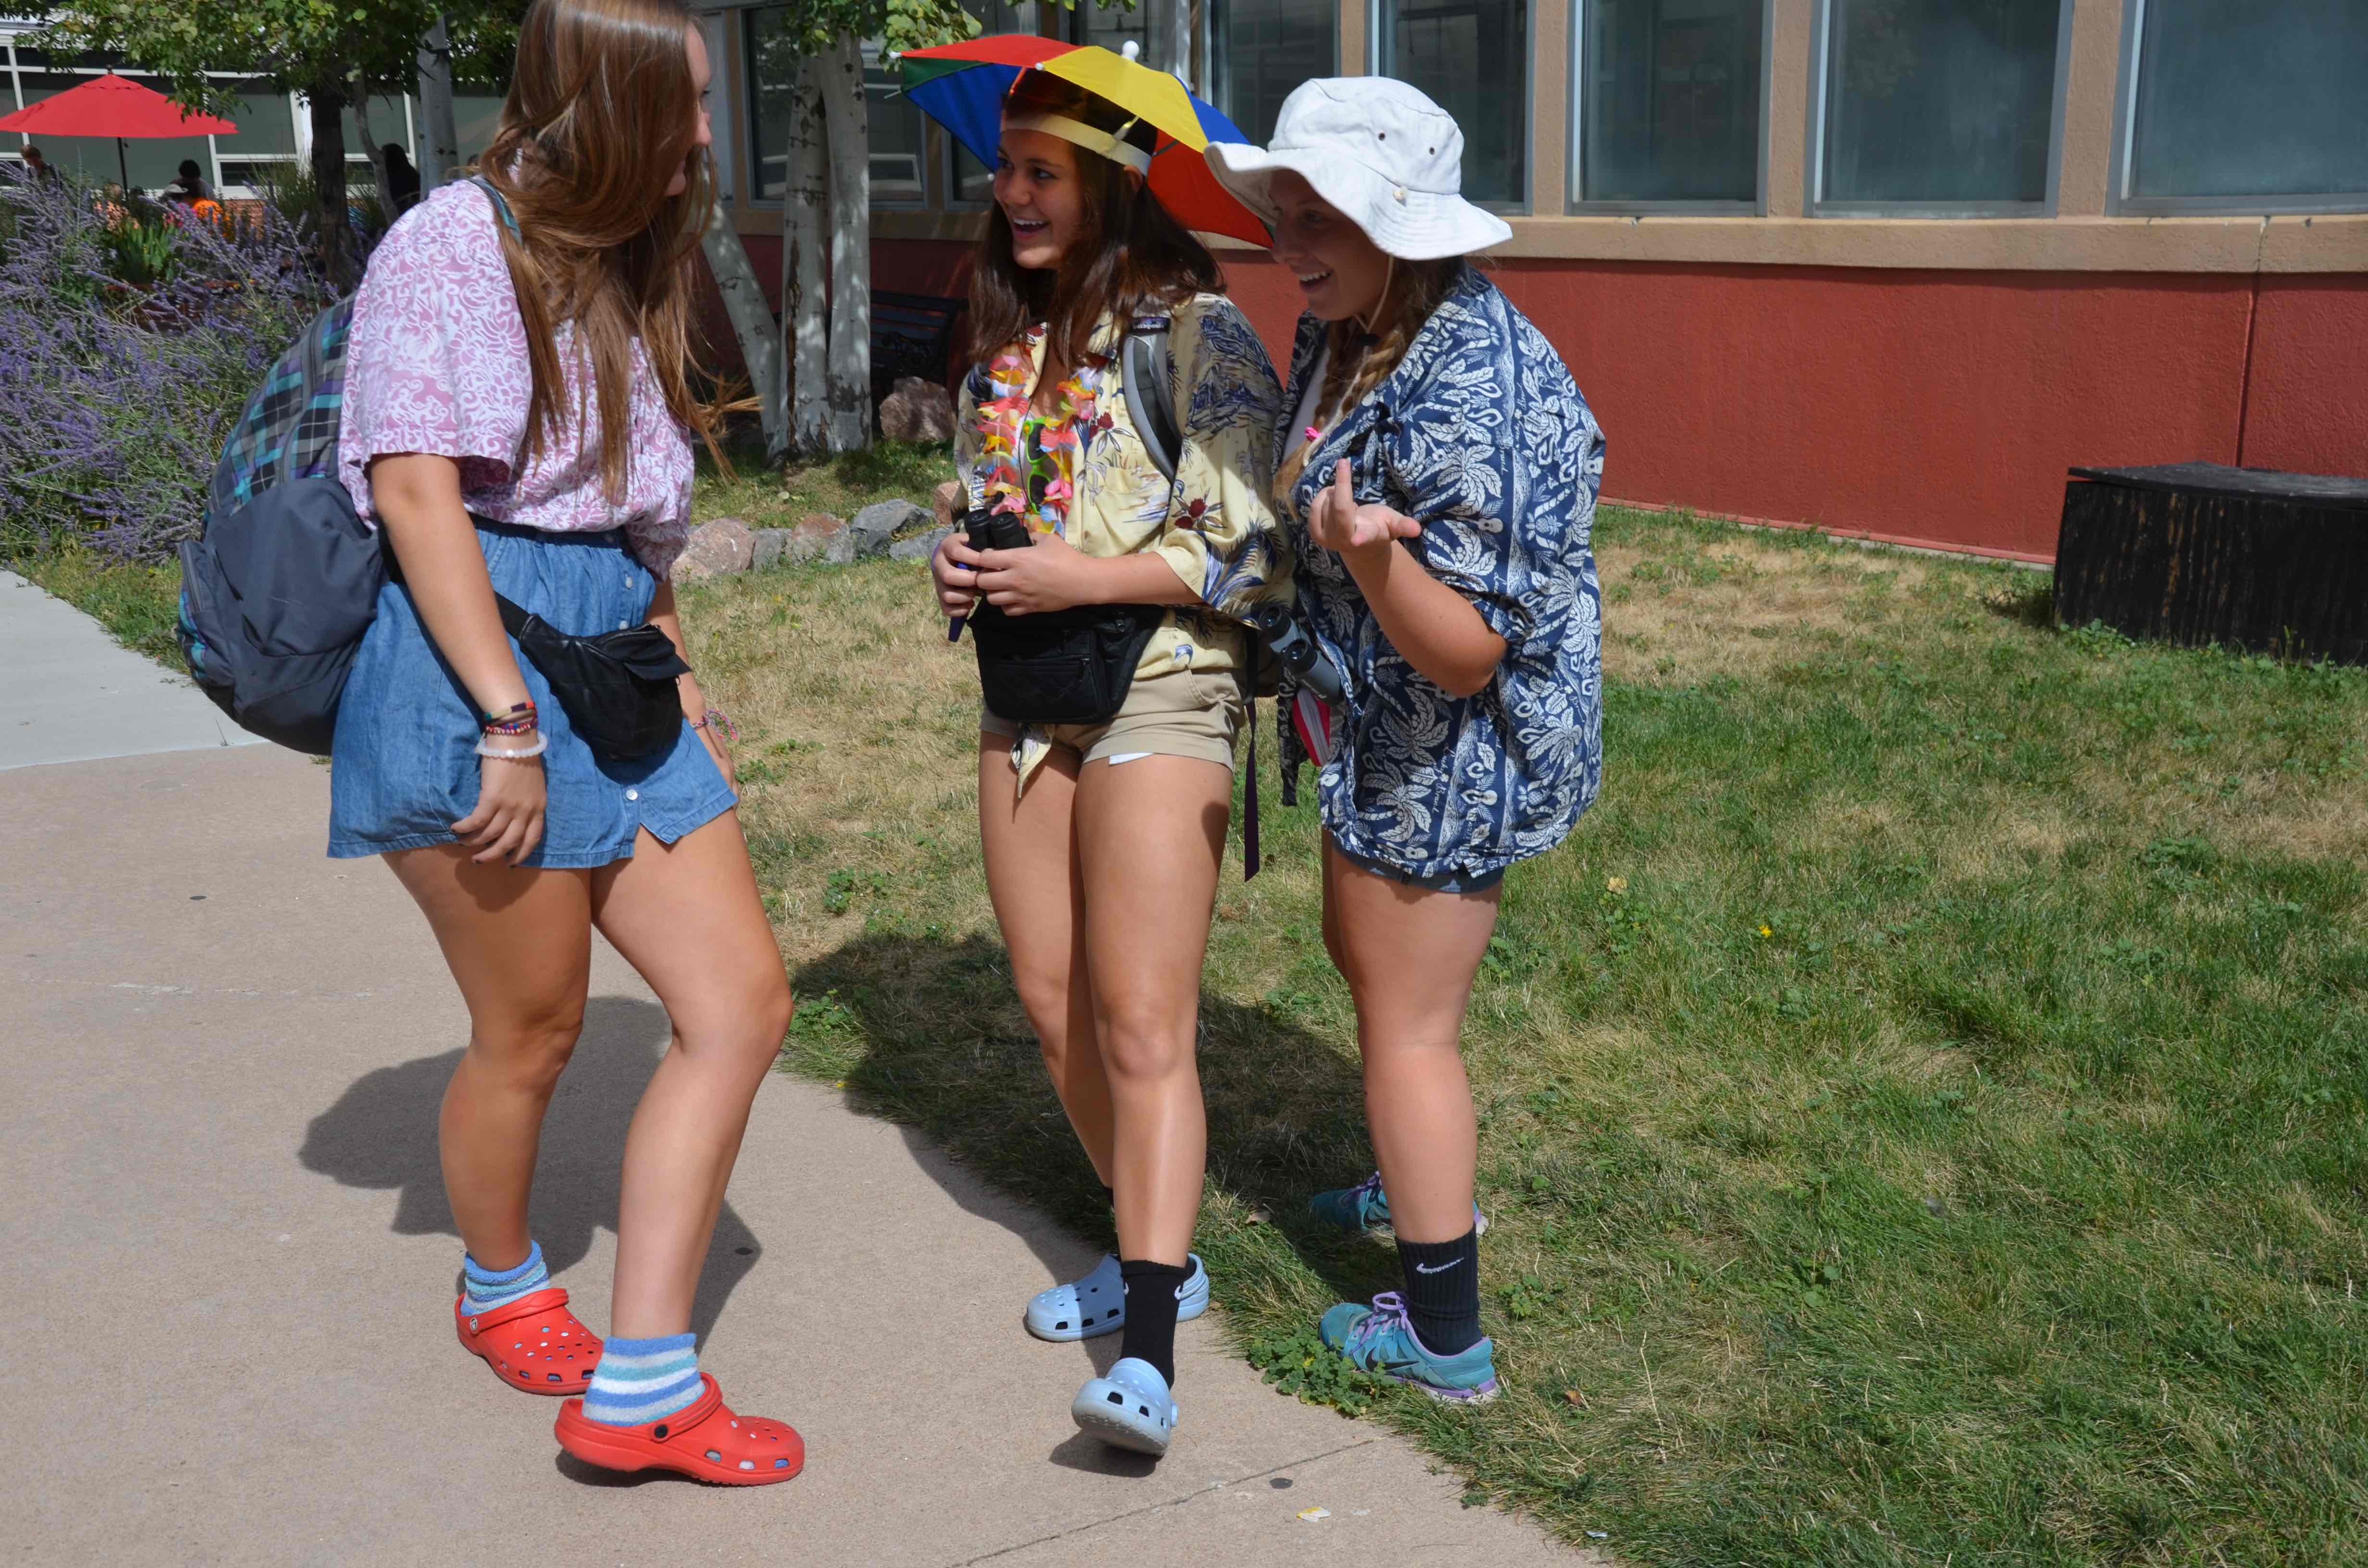 LHS seniors Hailey Egelhoff, Elisabeth Sanson, and junior  Kailee Medved chat in the courtyard during lunch